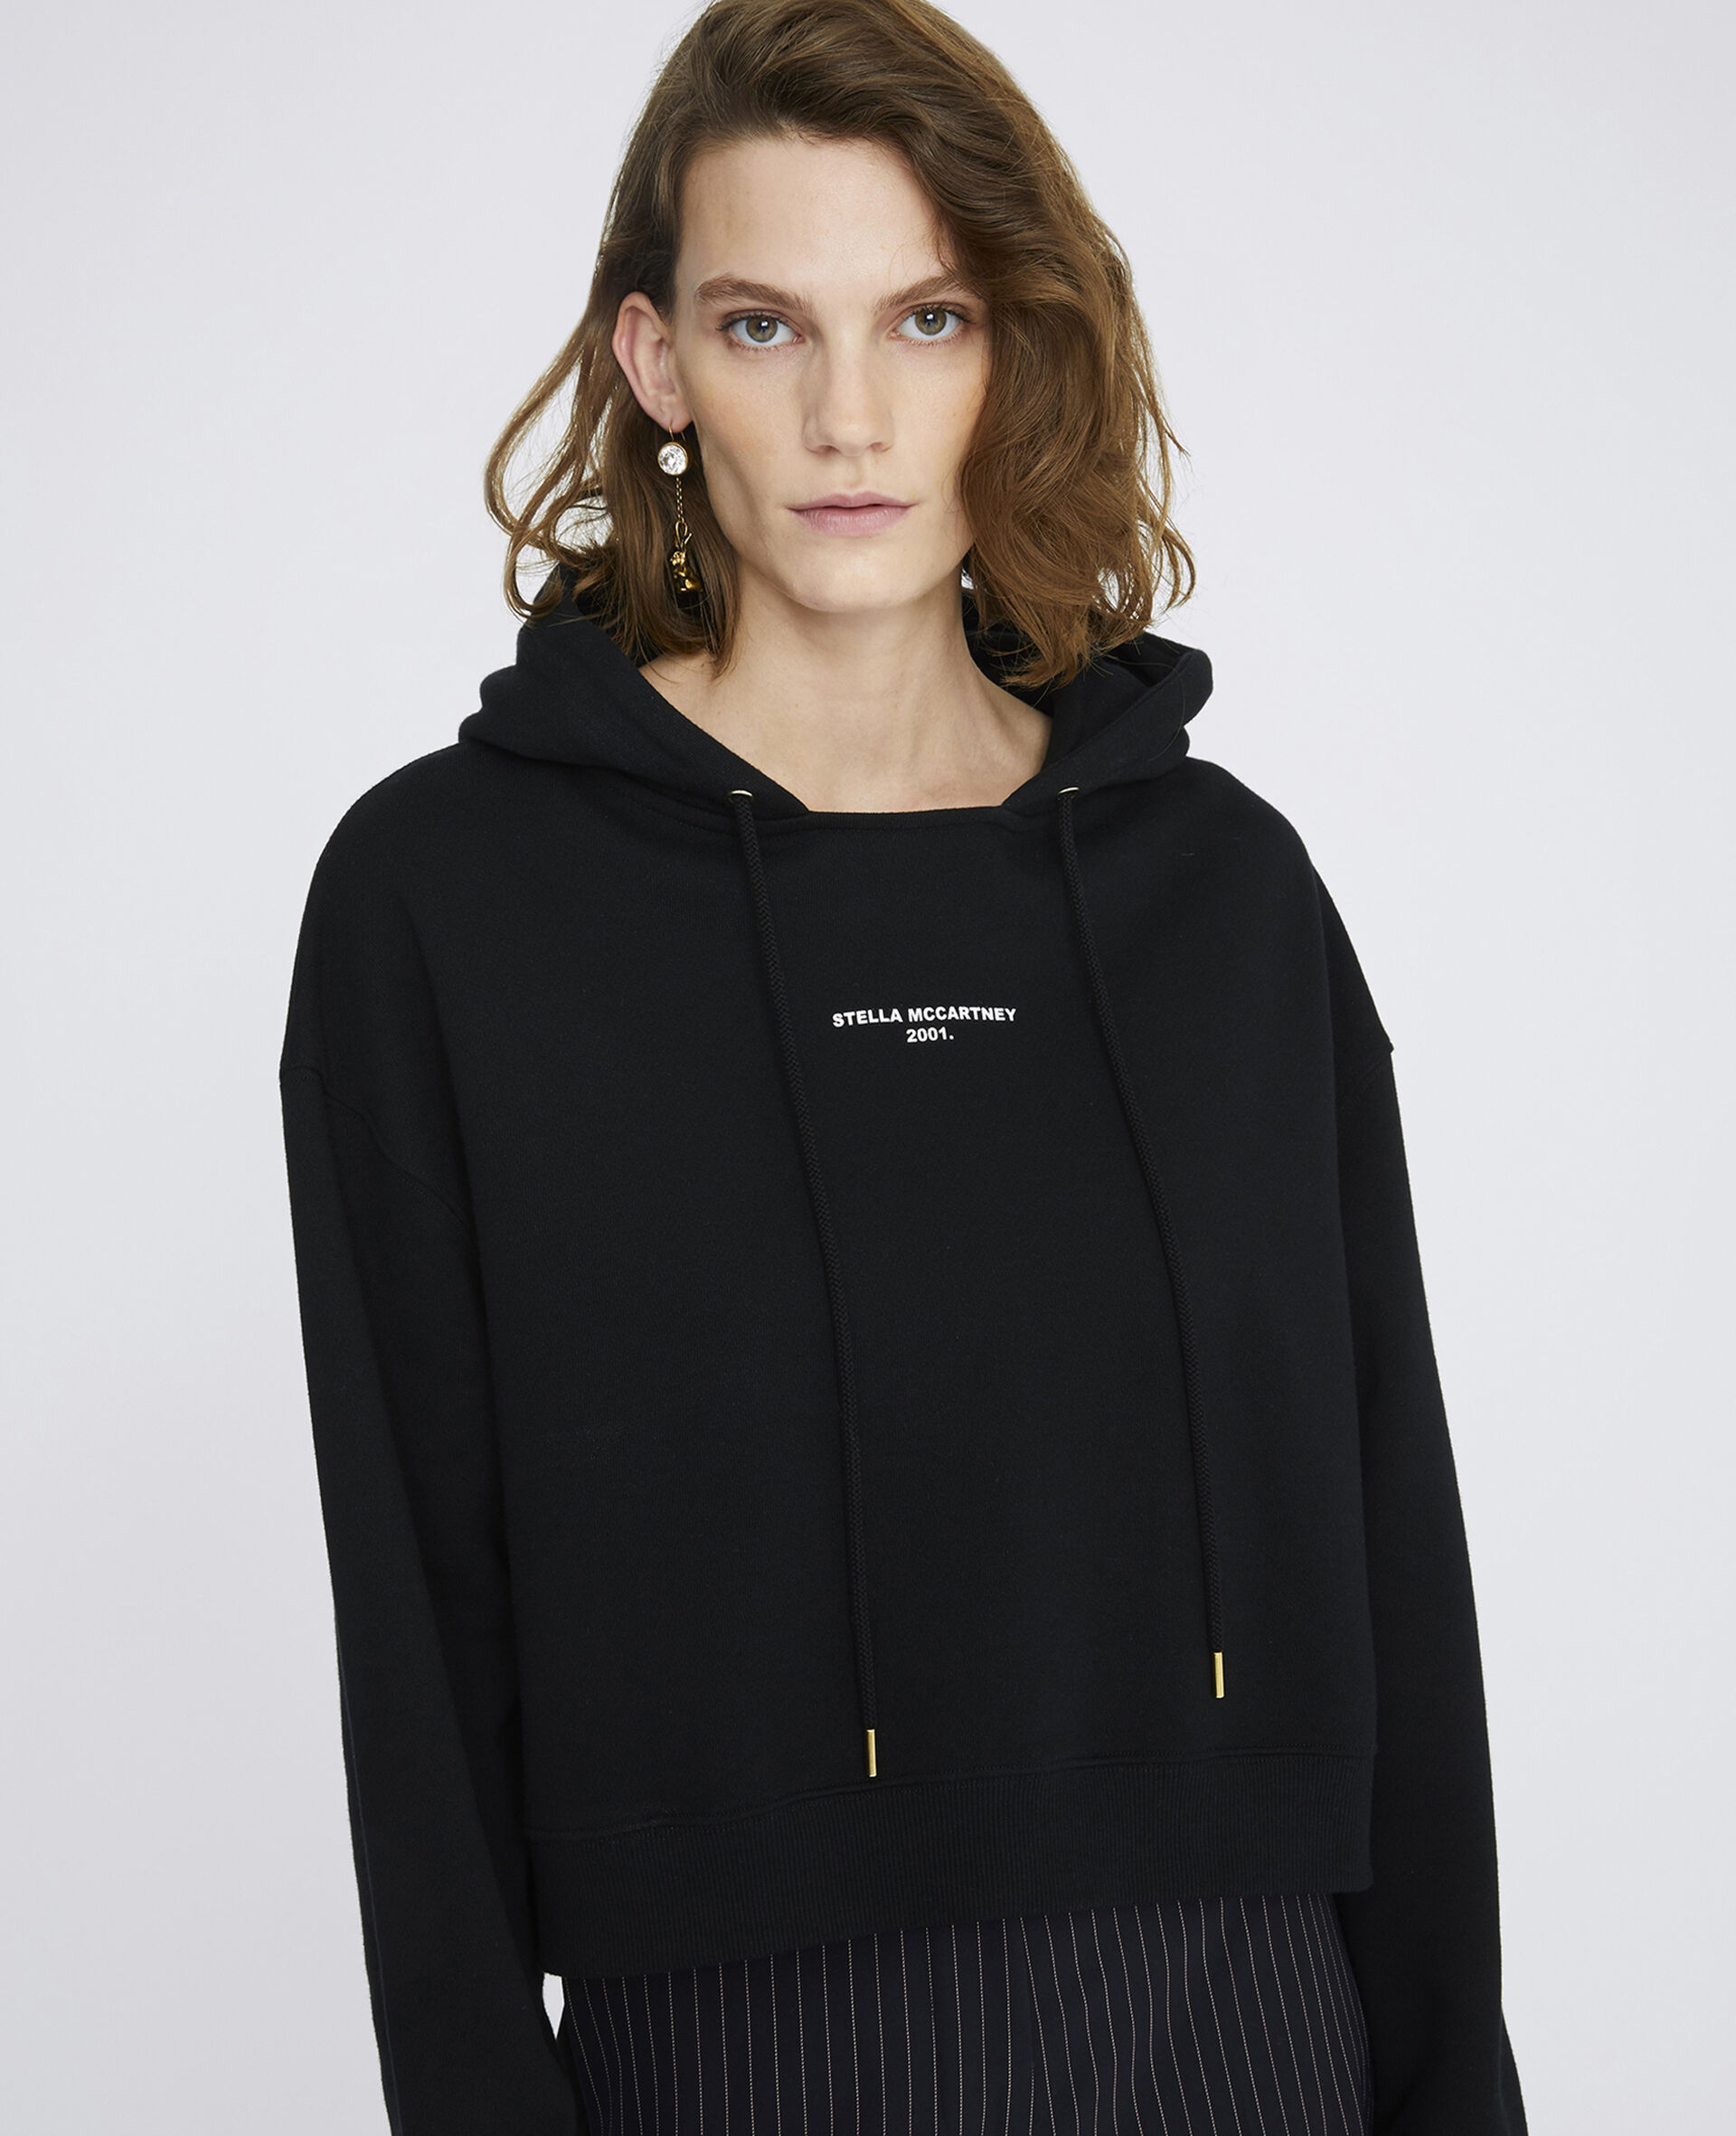 Stella McCartney 2001. Hoodie-Black-large image number 3